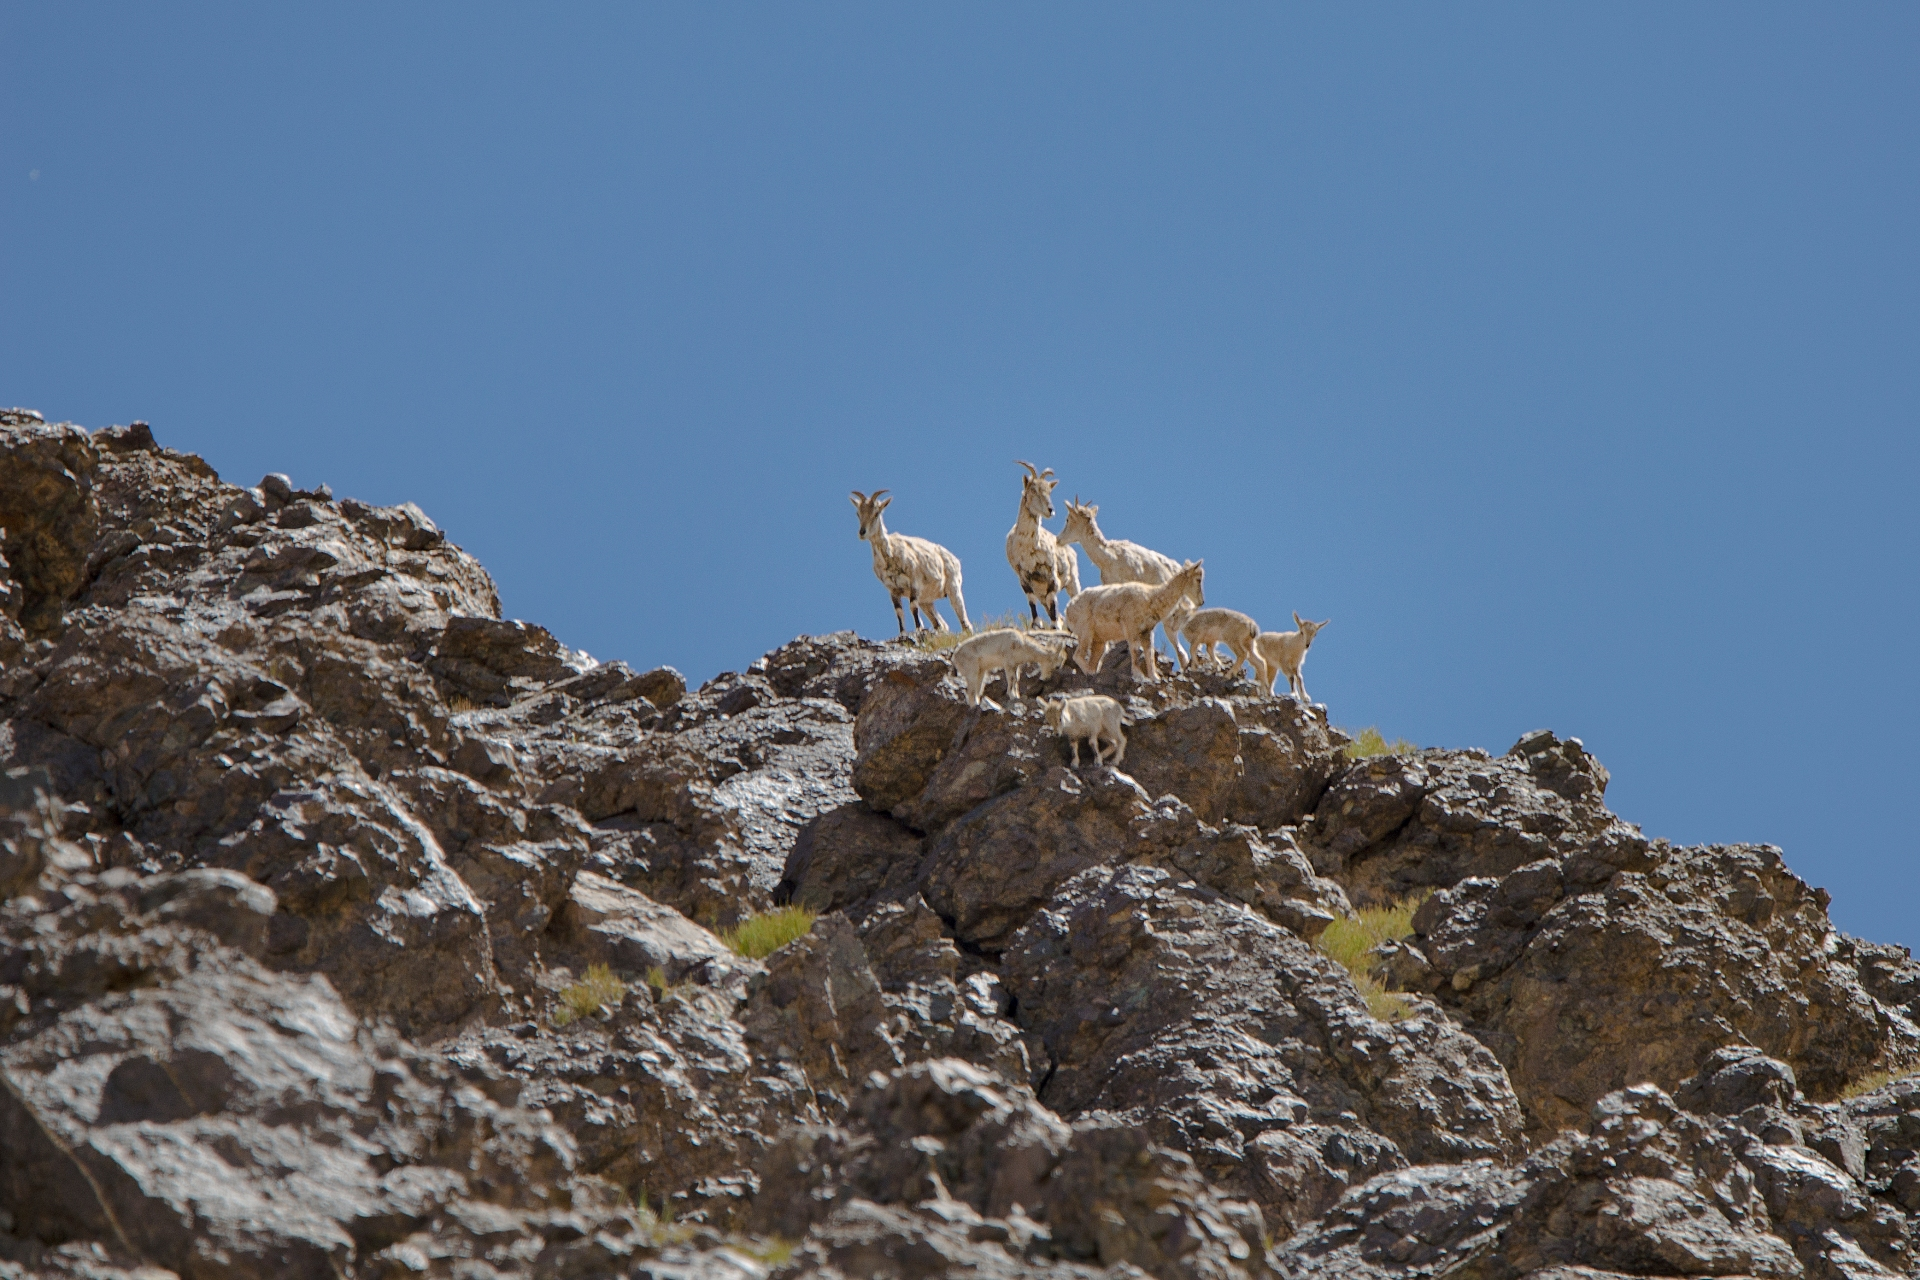 More closely related to goats than sheep, the blue sheep or bharal, feeds primarily on mountain grass. Photo: Saurabh Sawant